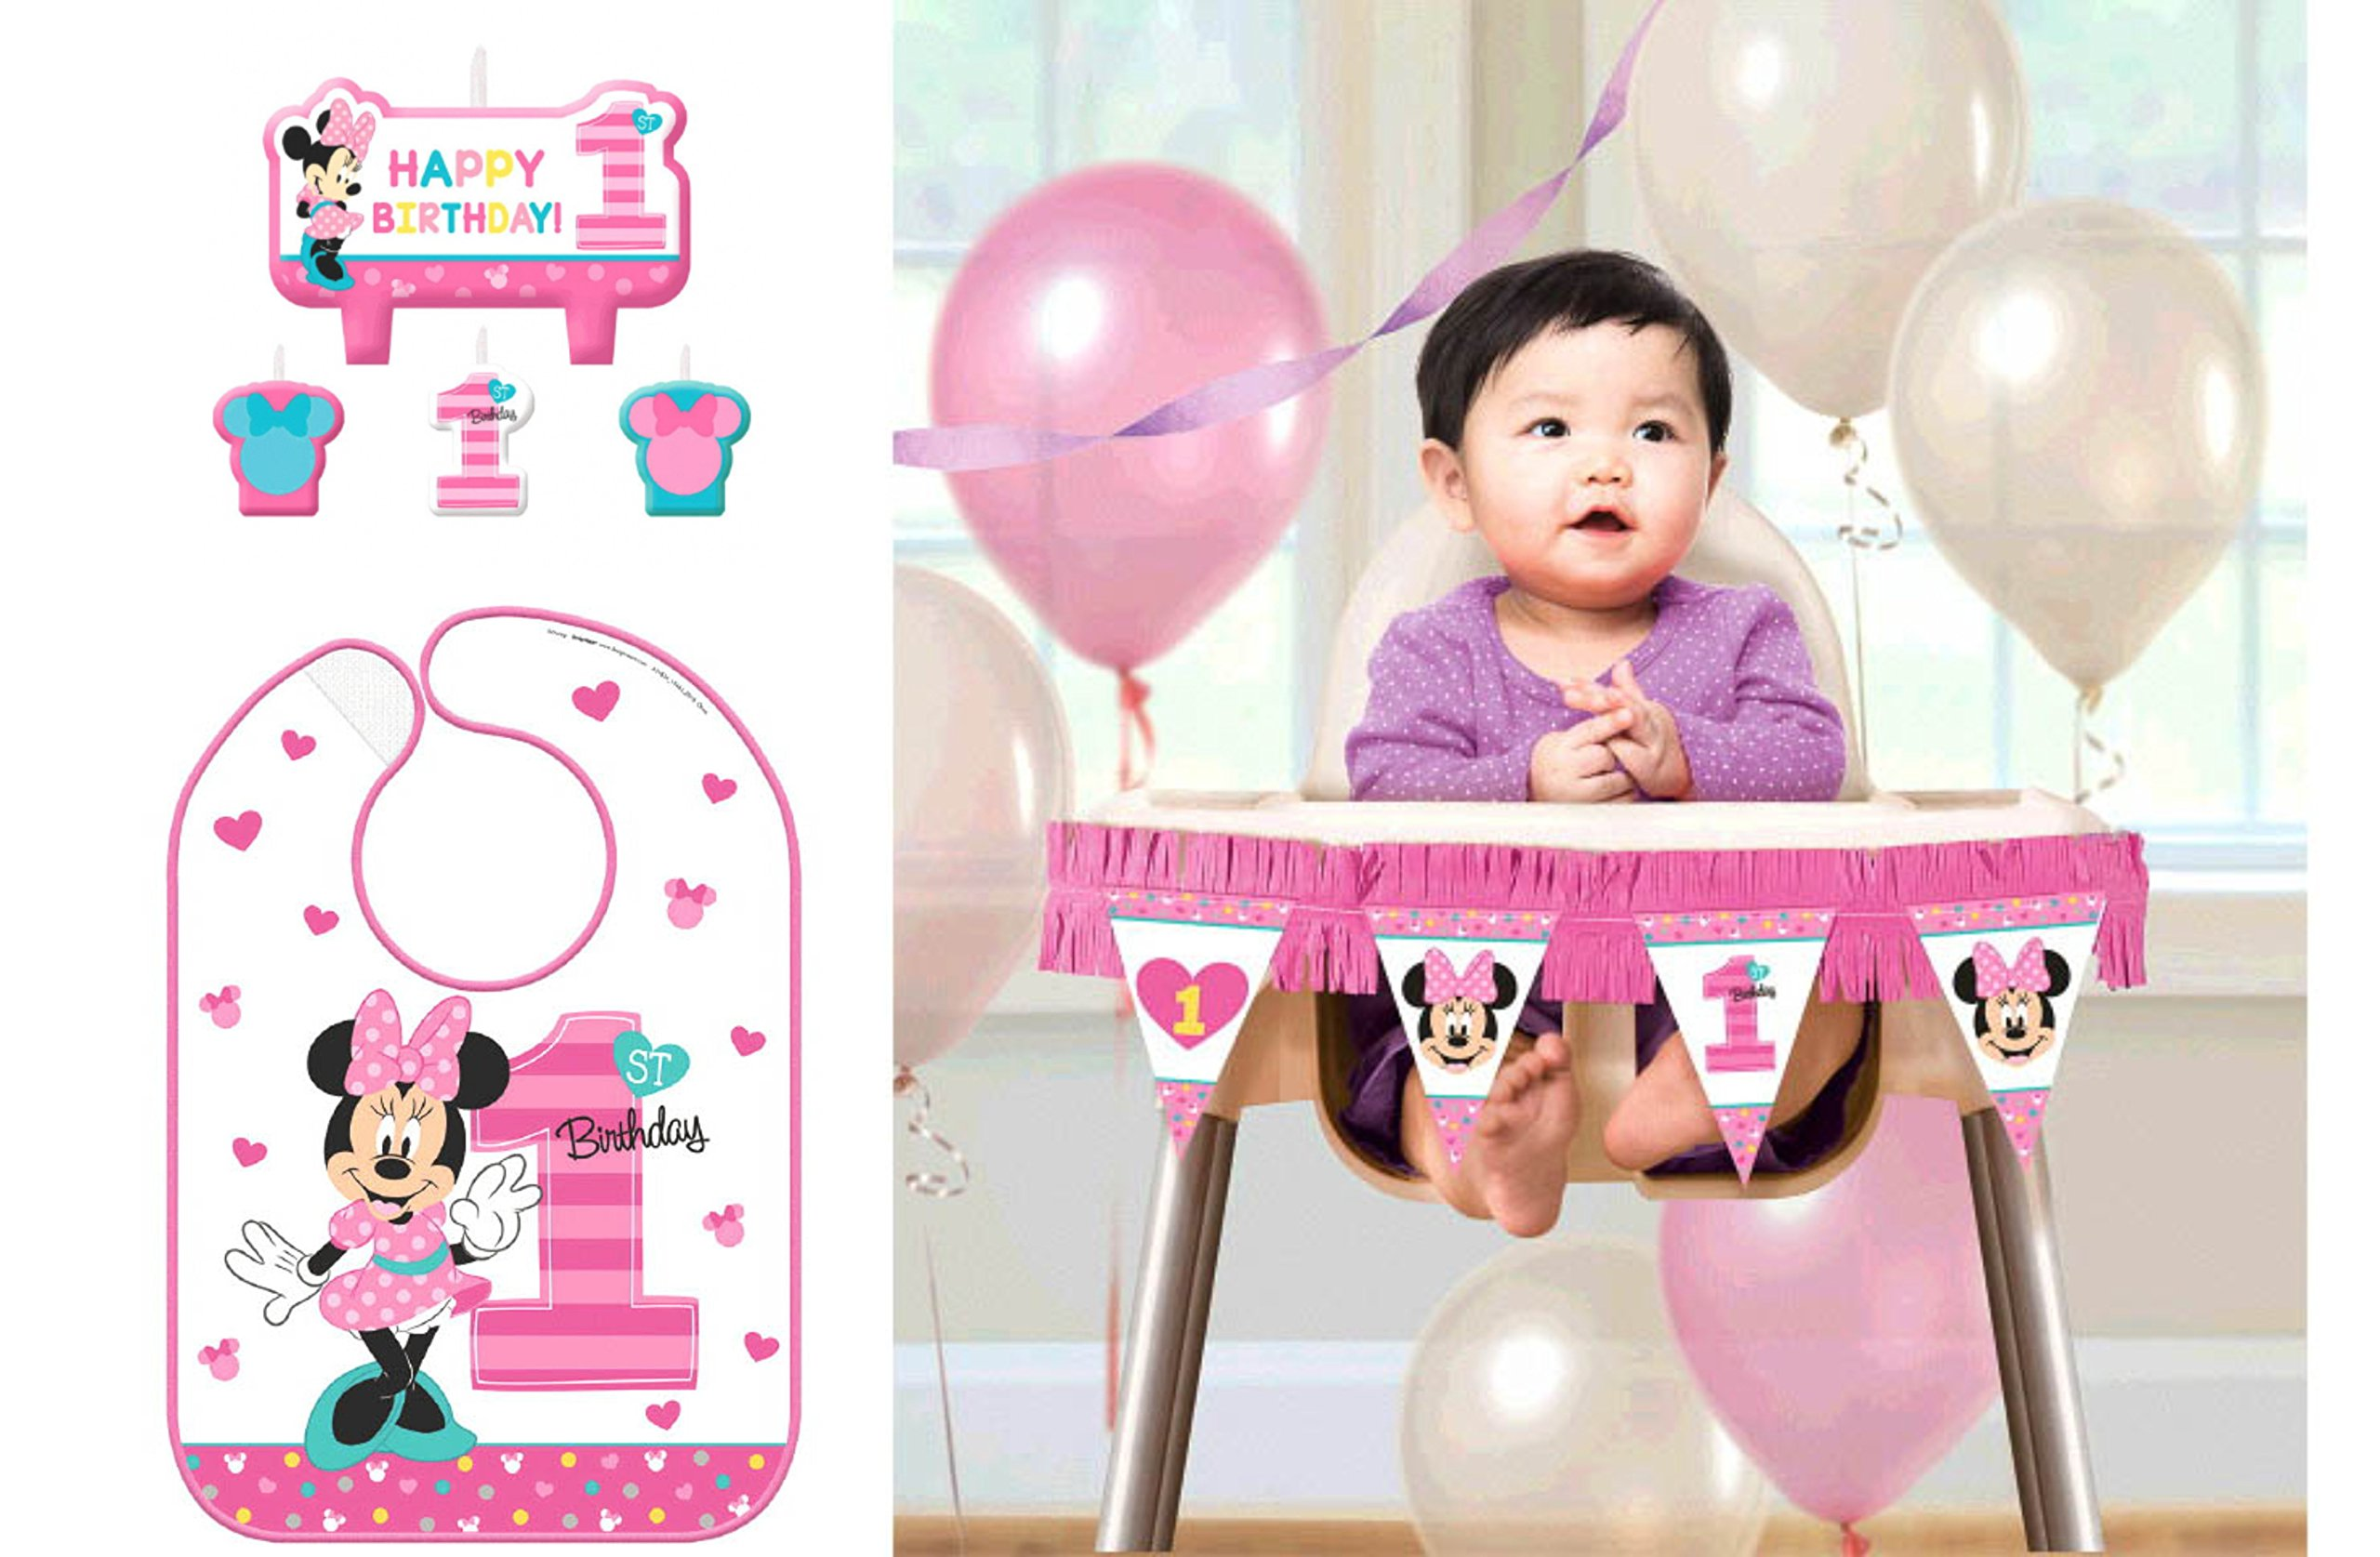 1st Birthday Minnie Mouse Fun To Be One First Birthday Party Supply Decorations Pack Bundle Includes Minnie Mouse Candles, High Chair Decorating Kit, 1st Birthday Bib!